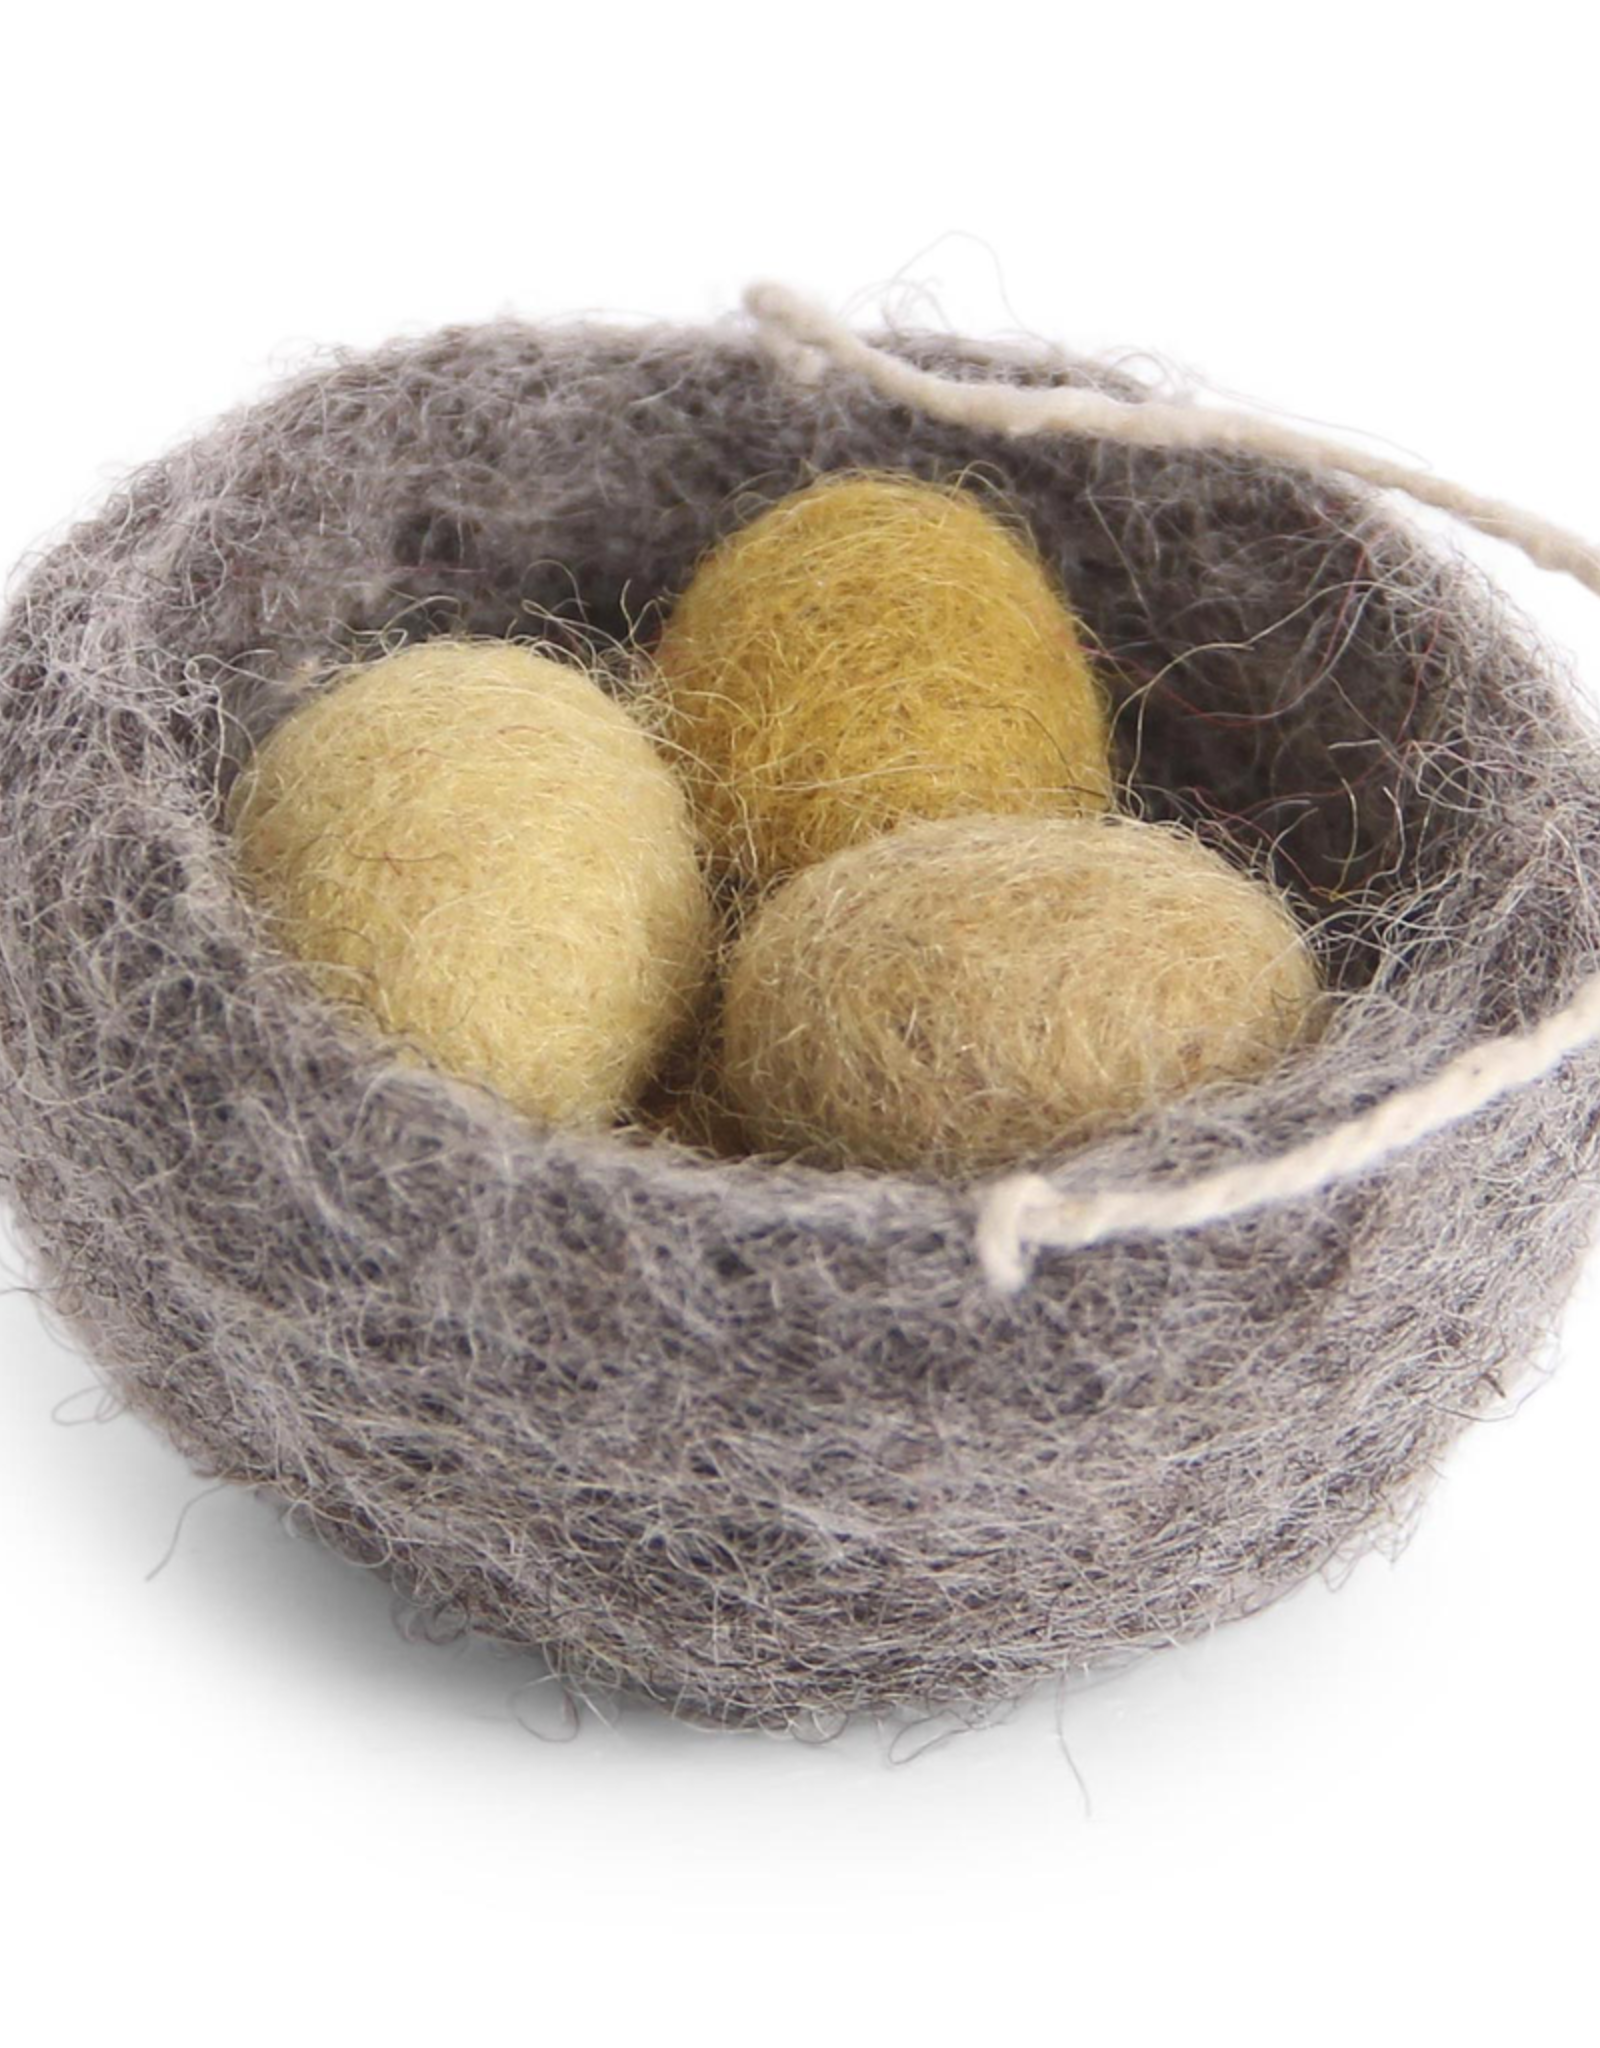 EGS EGS Nest With Yellow Eggs